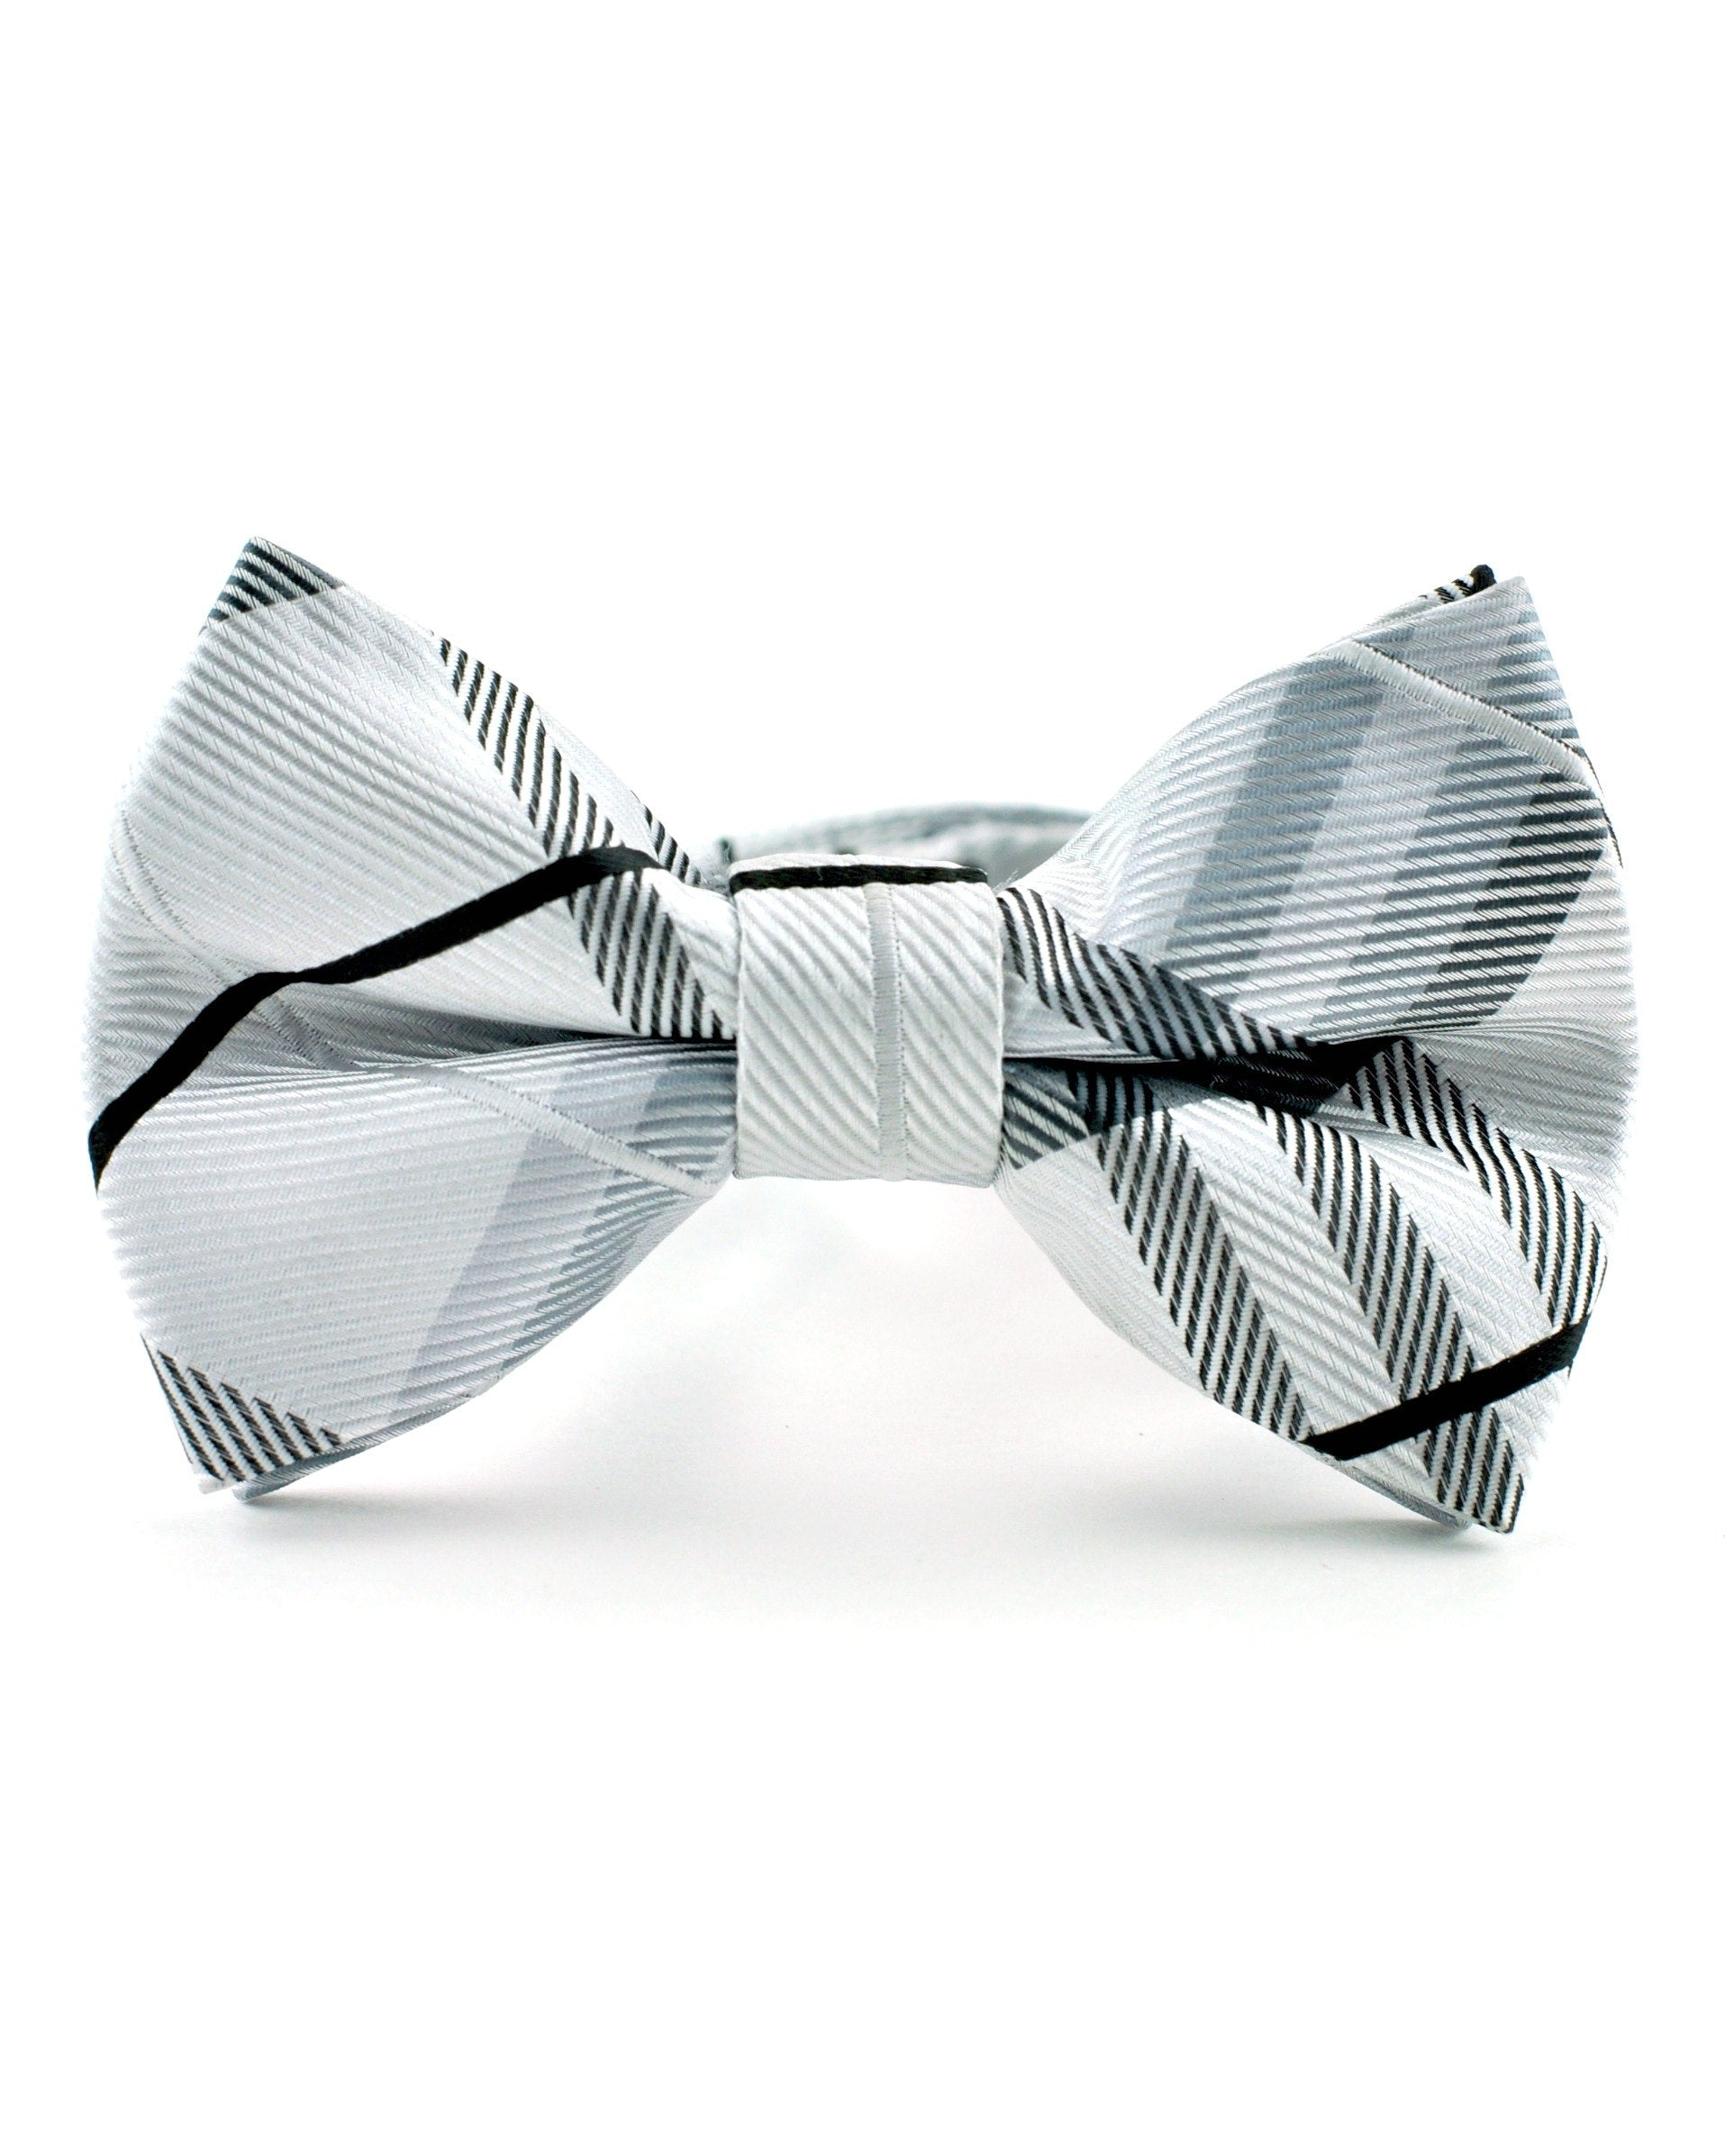 shadow-plaid-bow-tie.jpg